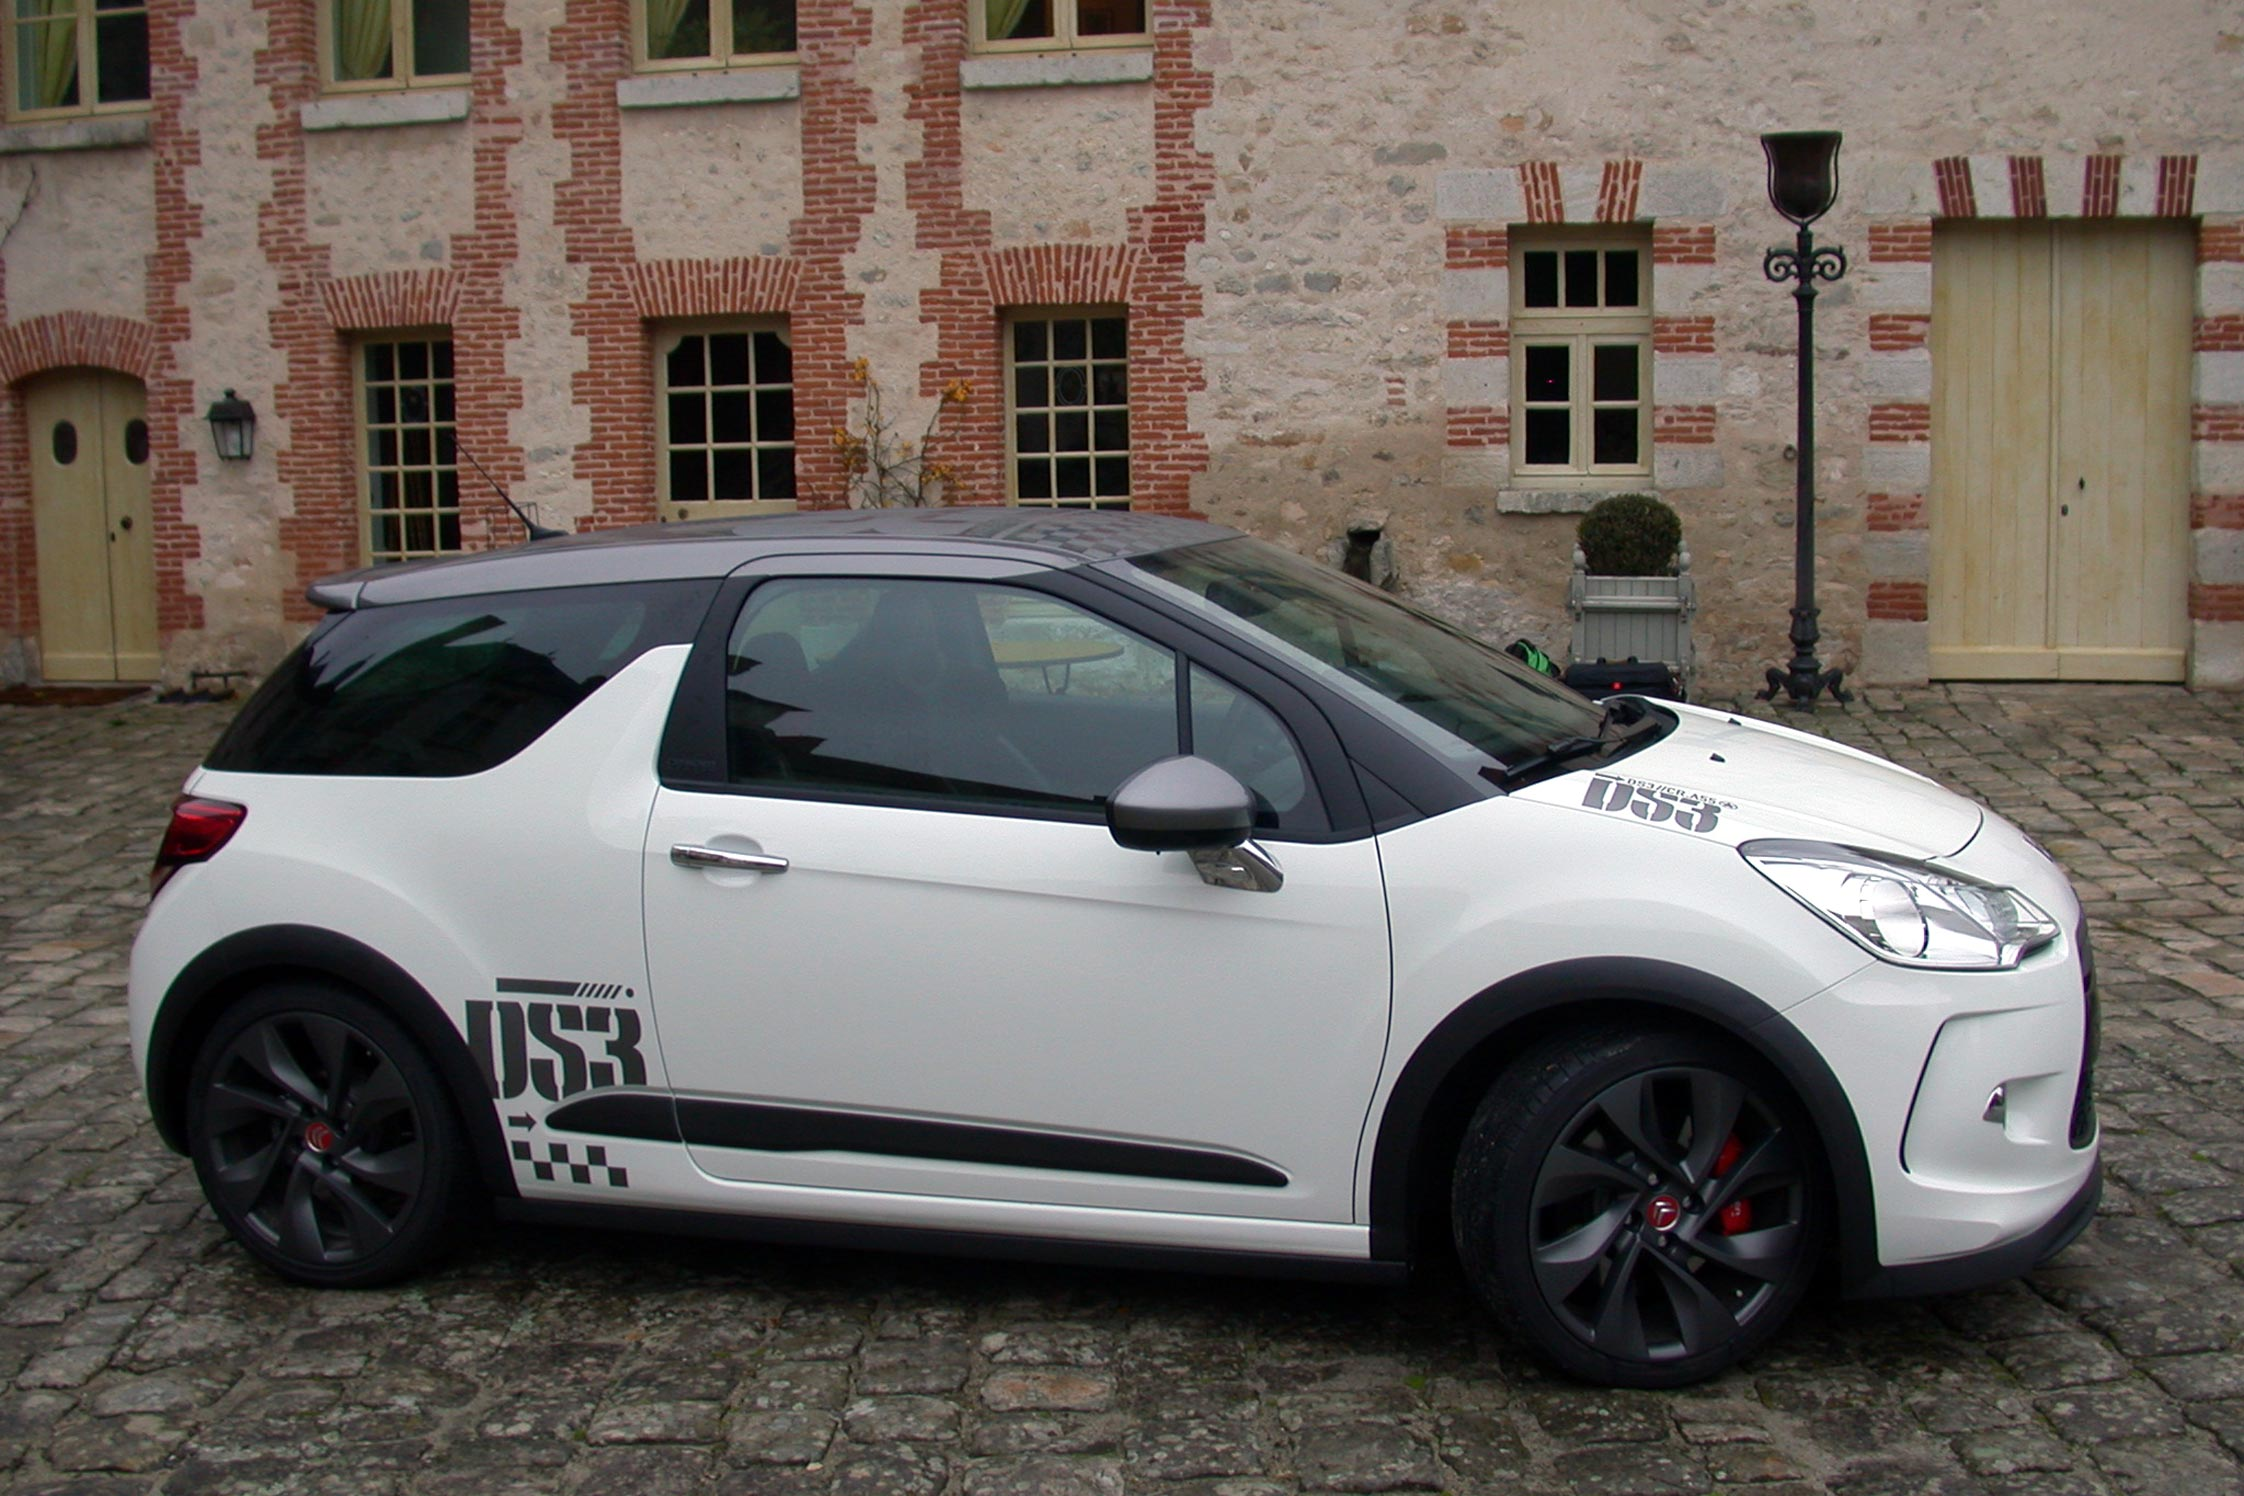 essai citroen ds3 racing motorlegend. Black Bedroom Furniture Sets. Home Design Ideas